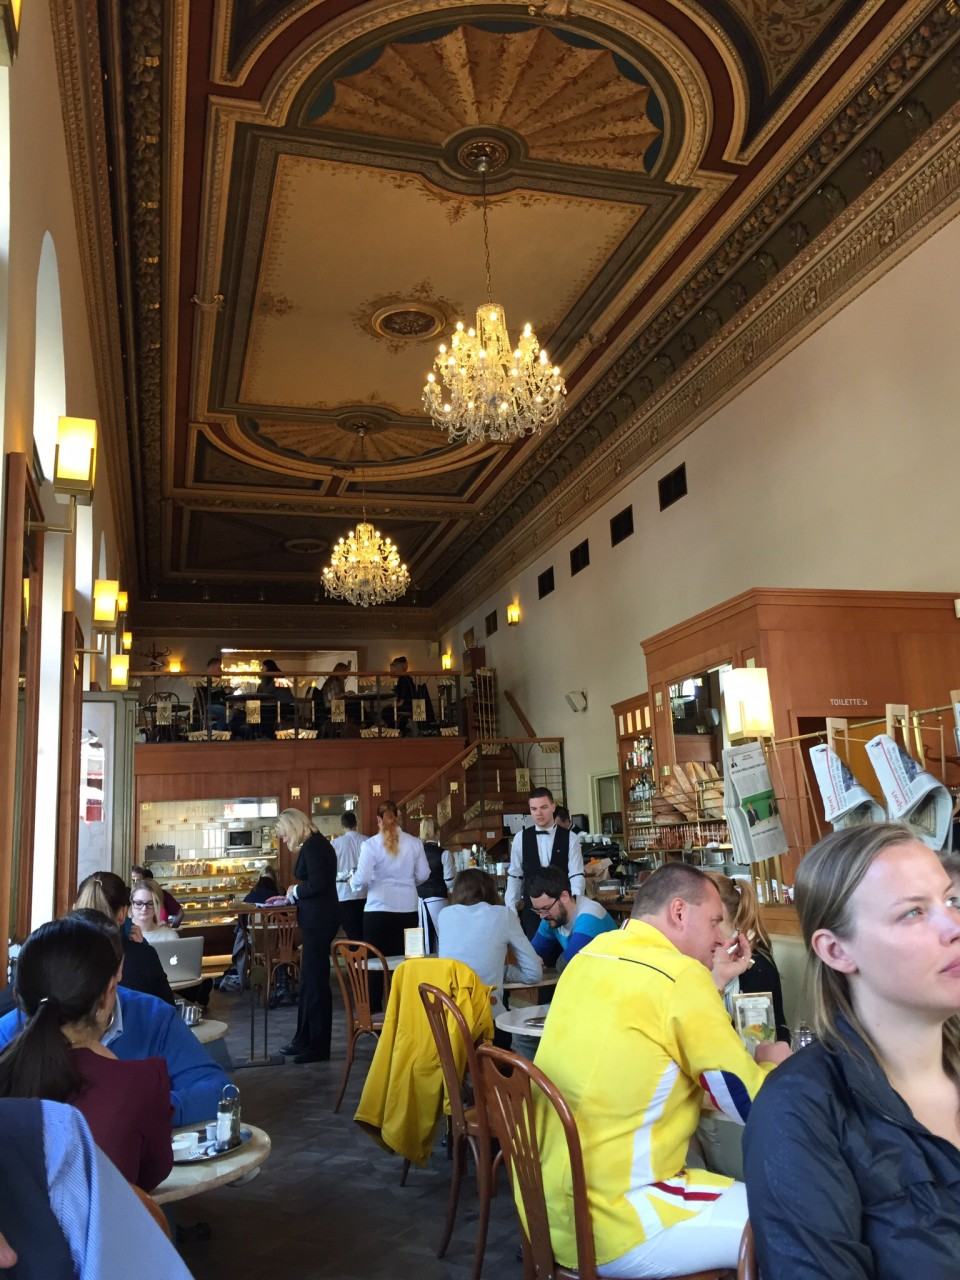 Cafe Savoy in Prague - the main room